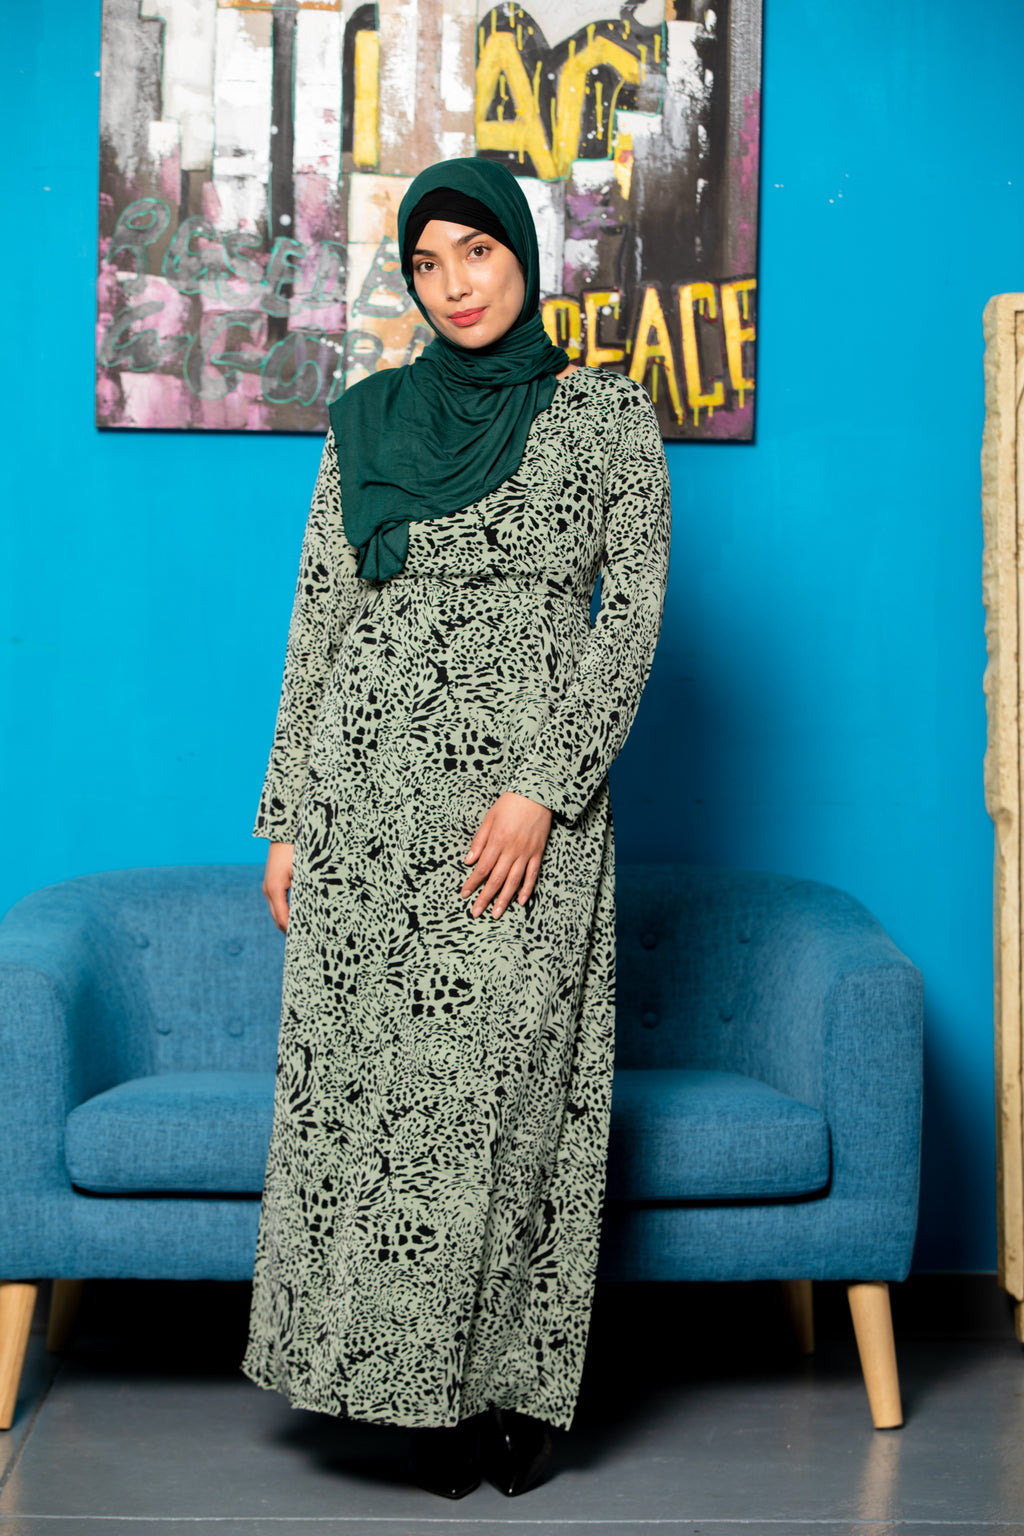 Lilac Lace Open Front Abaya - Abaya, Hijabs, Jilbabs, on sale now at UrbanModesty.com